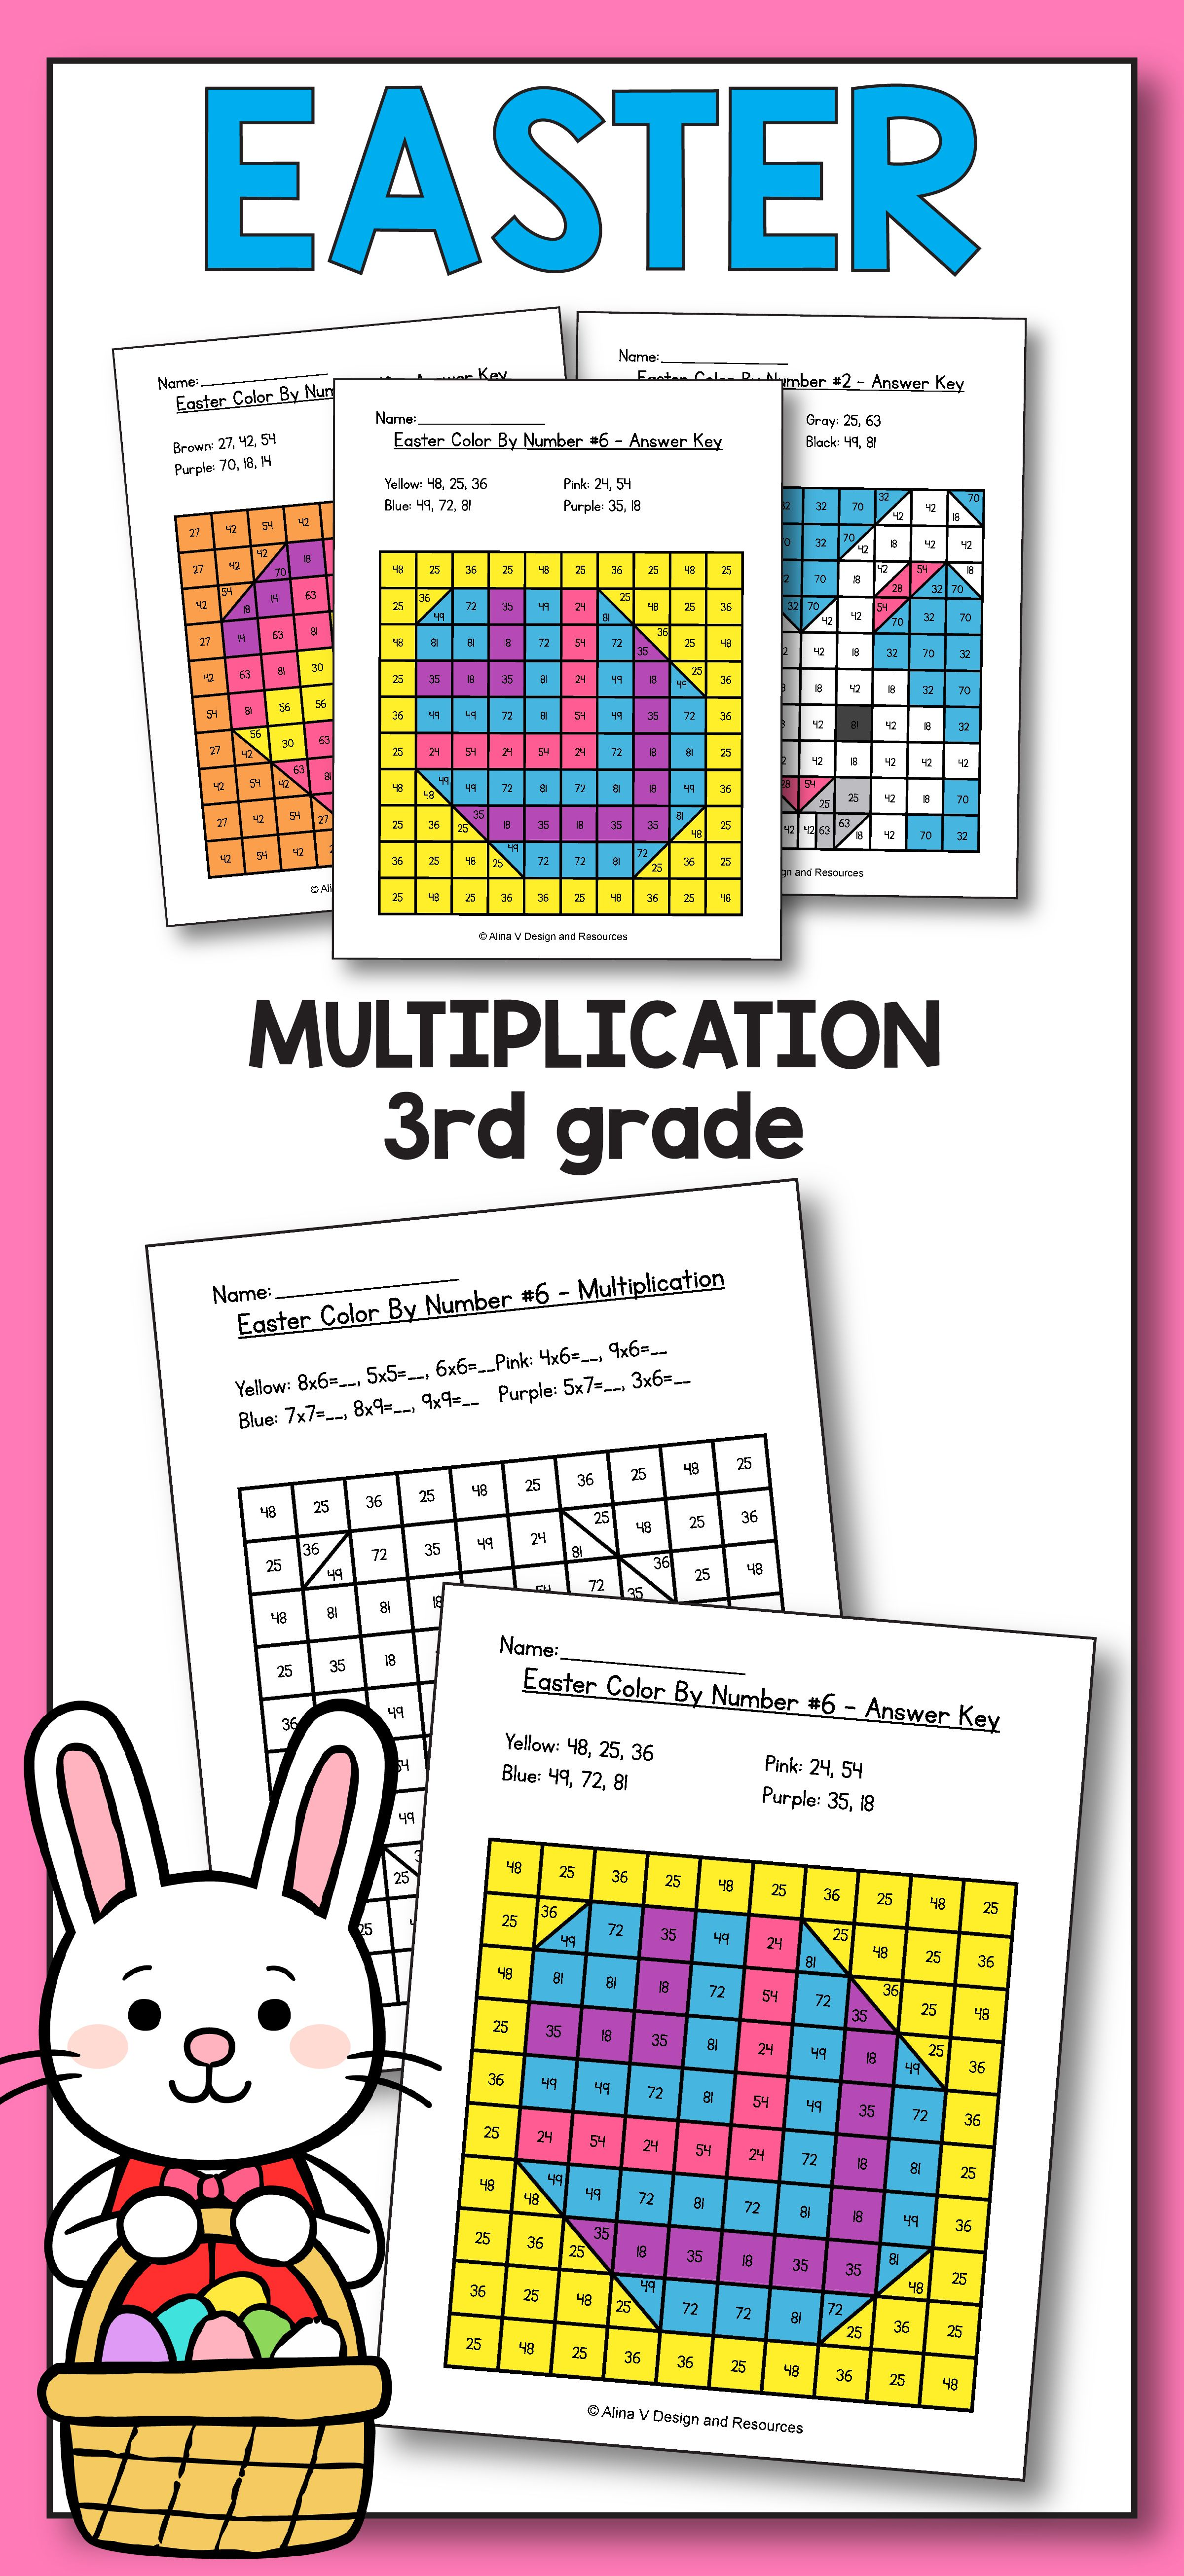 Easter Activities for 3rd Grade - Easter Multiplication Worksheets ...